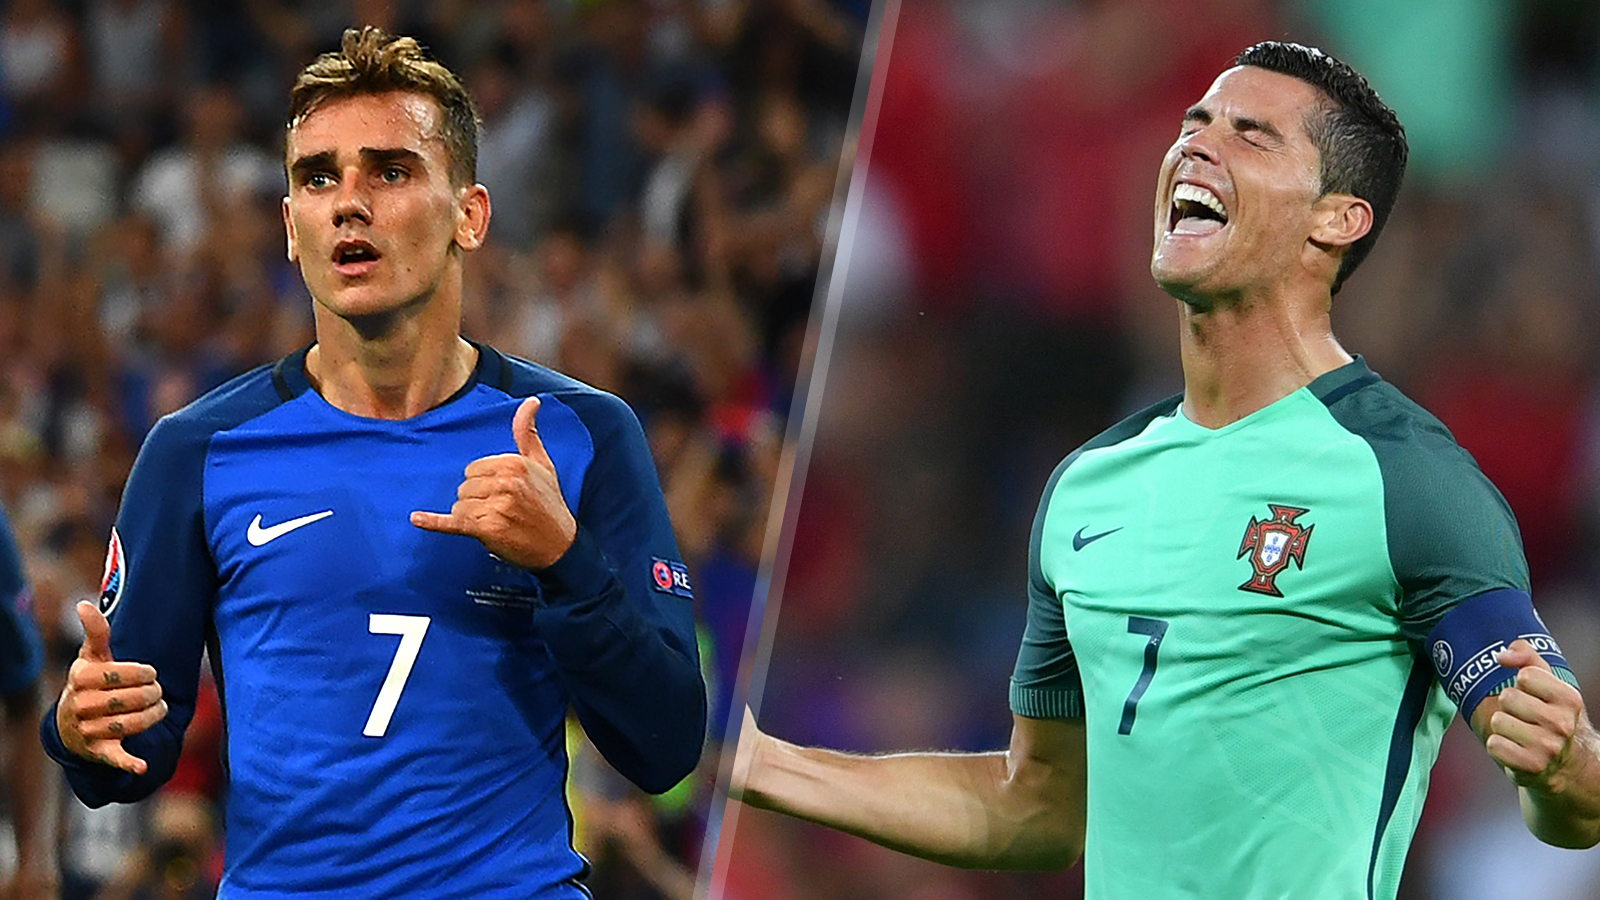 Early betting odds favor France to win vs. Portugal in Euro 2016 final